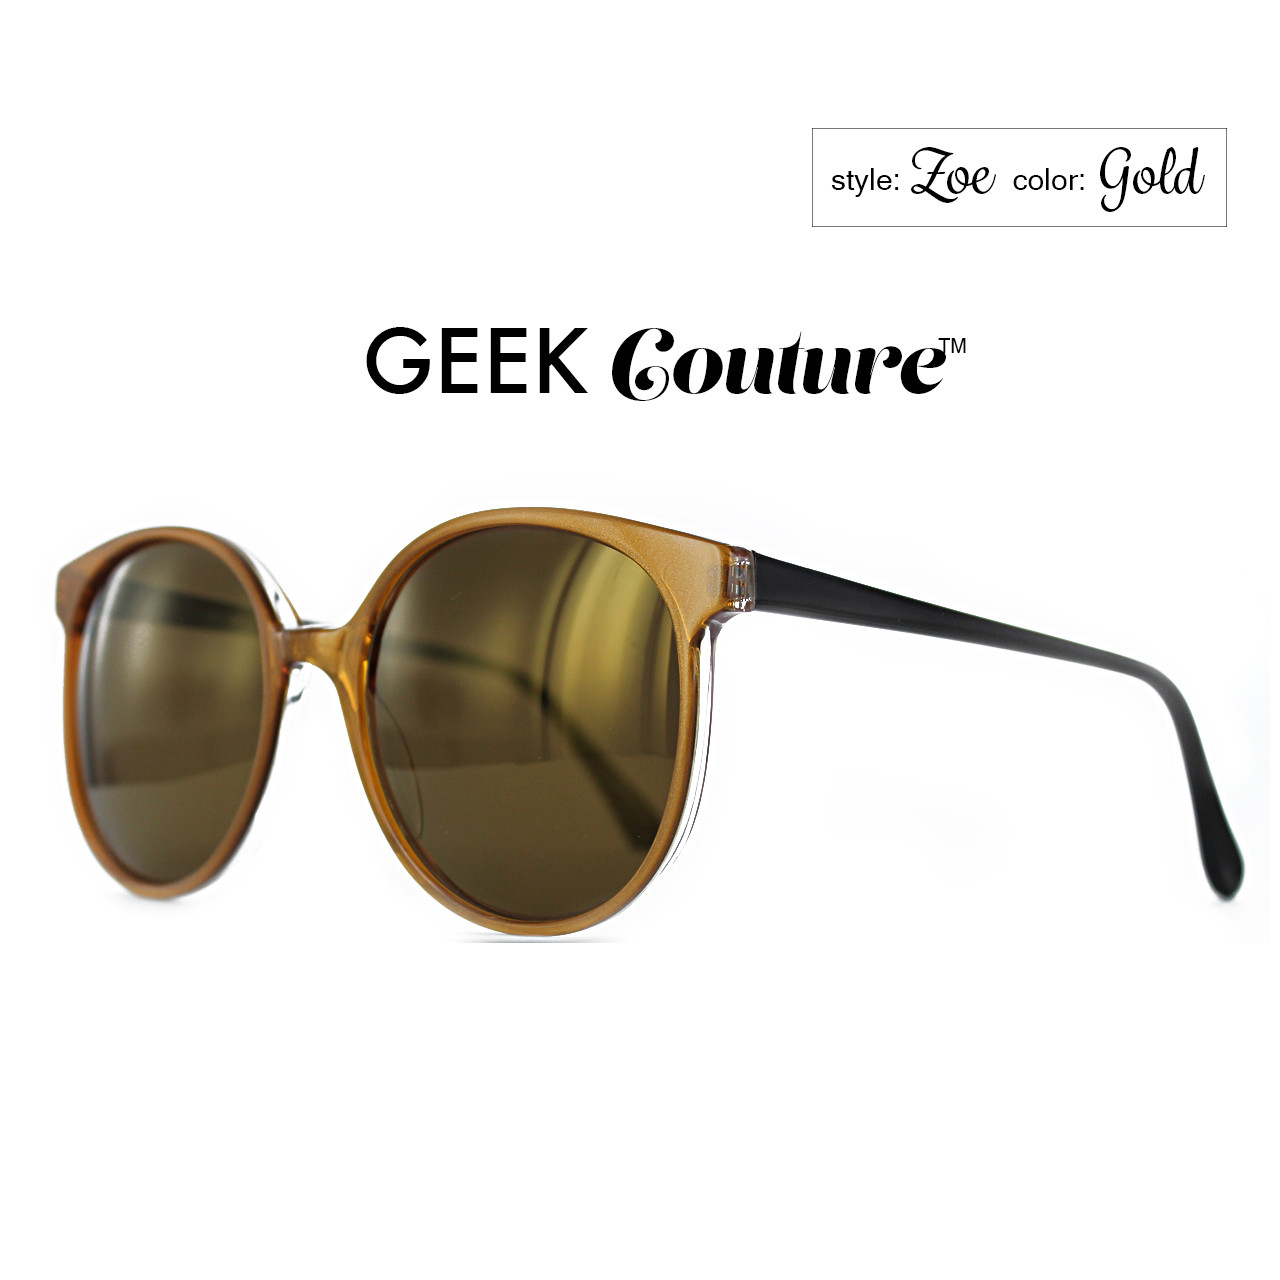 GEEK COUTURE style ZOE